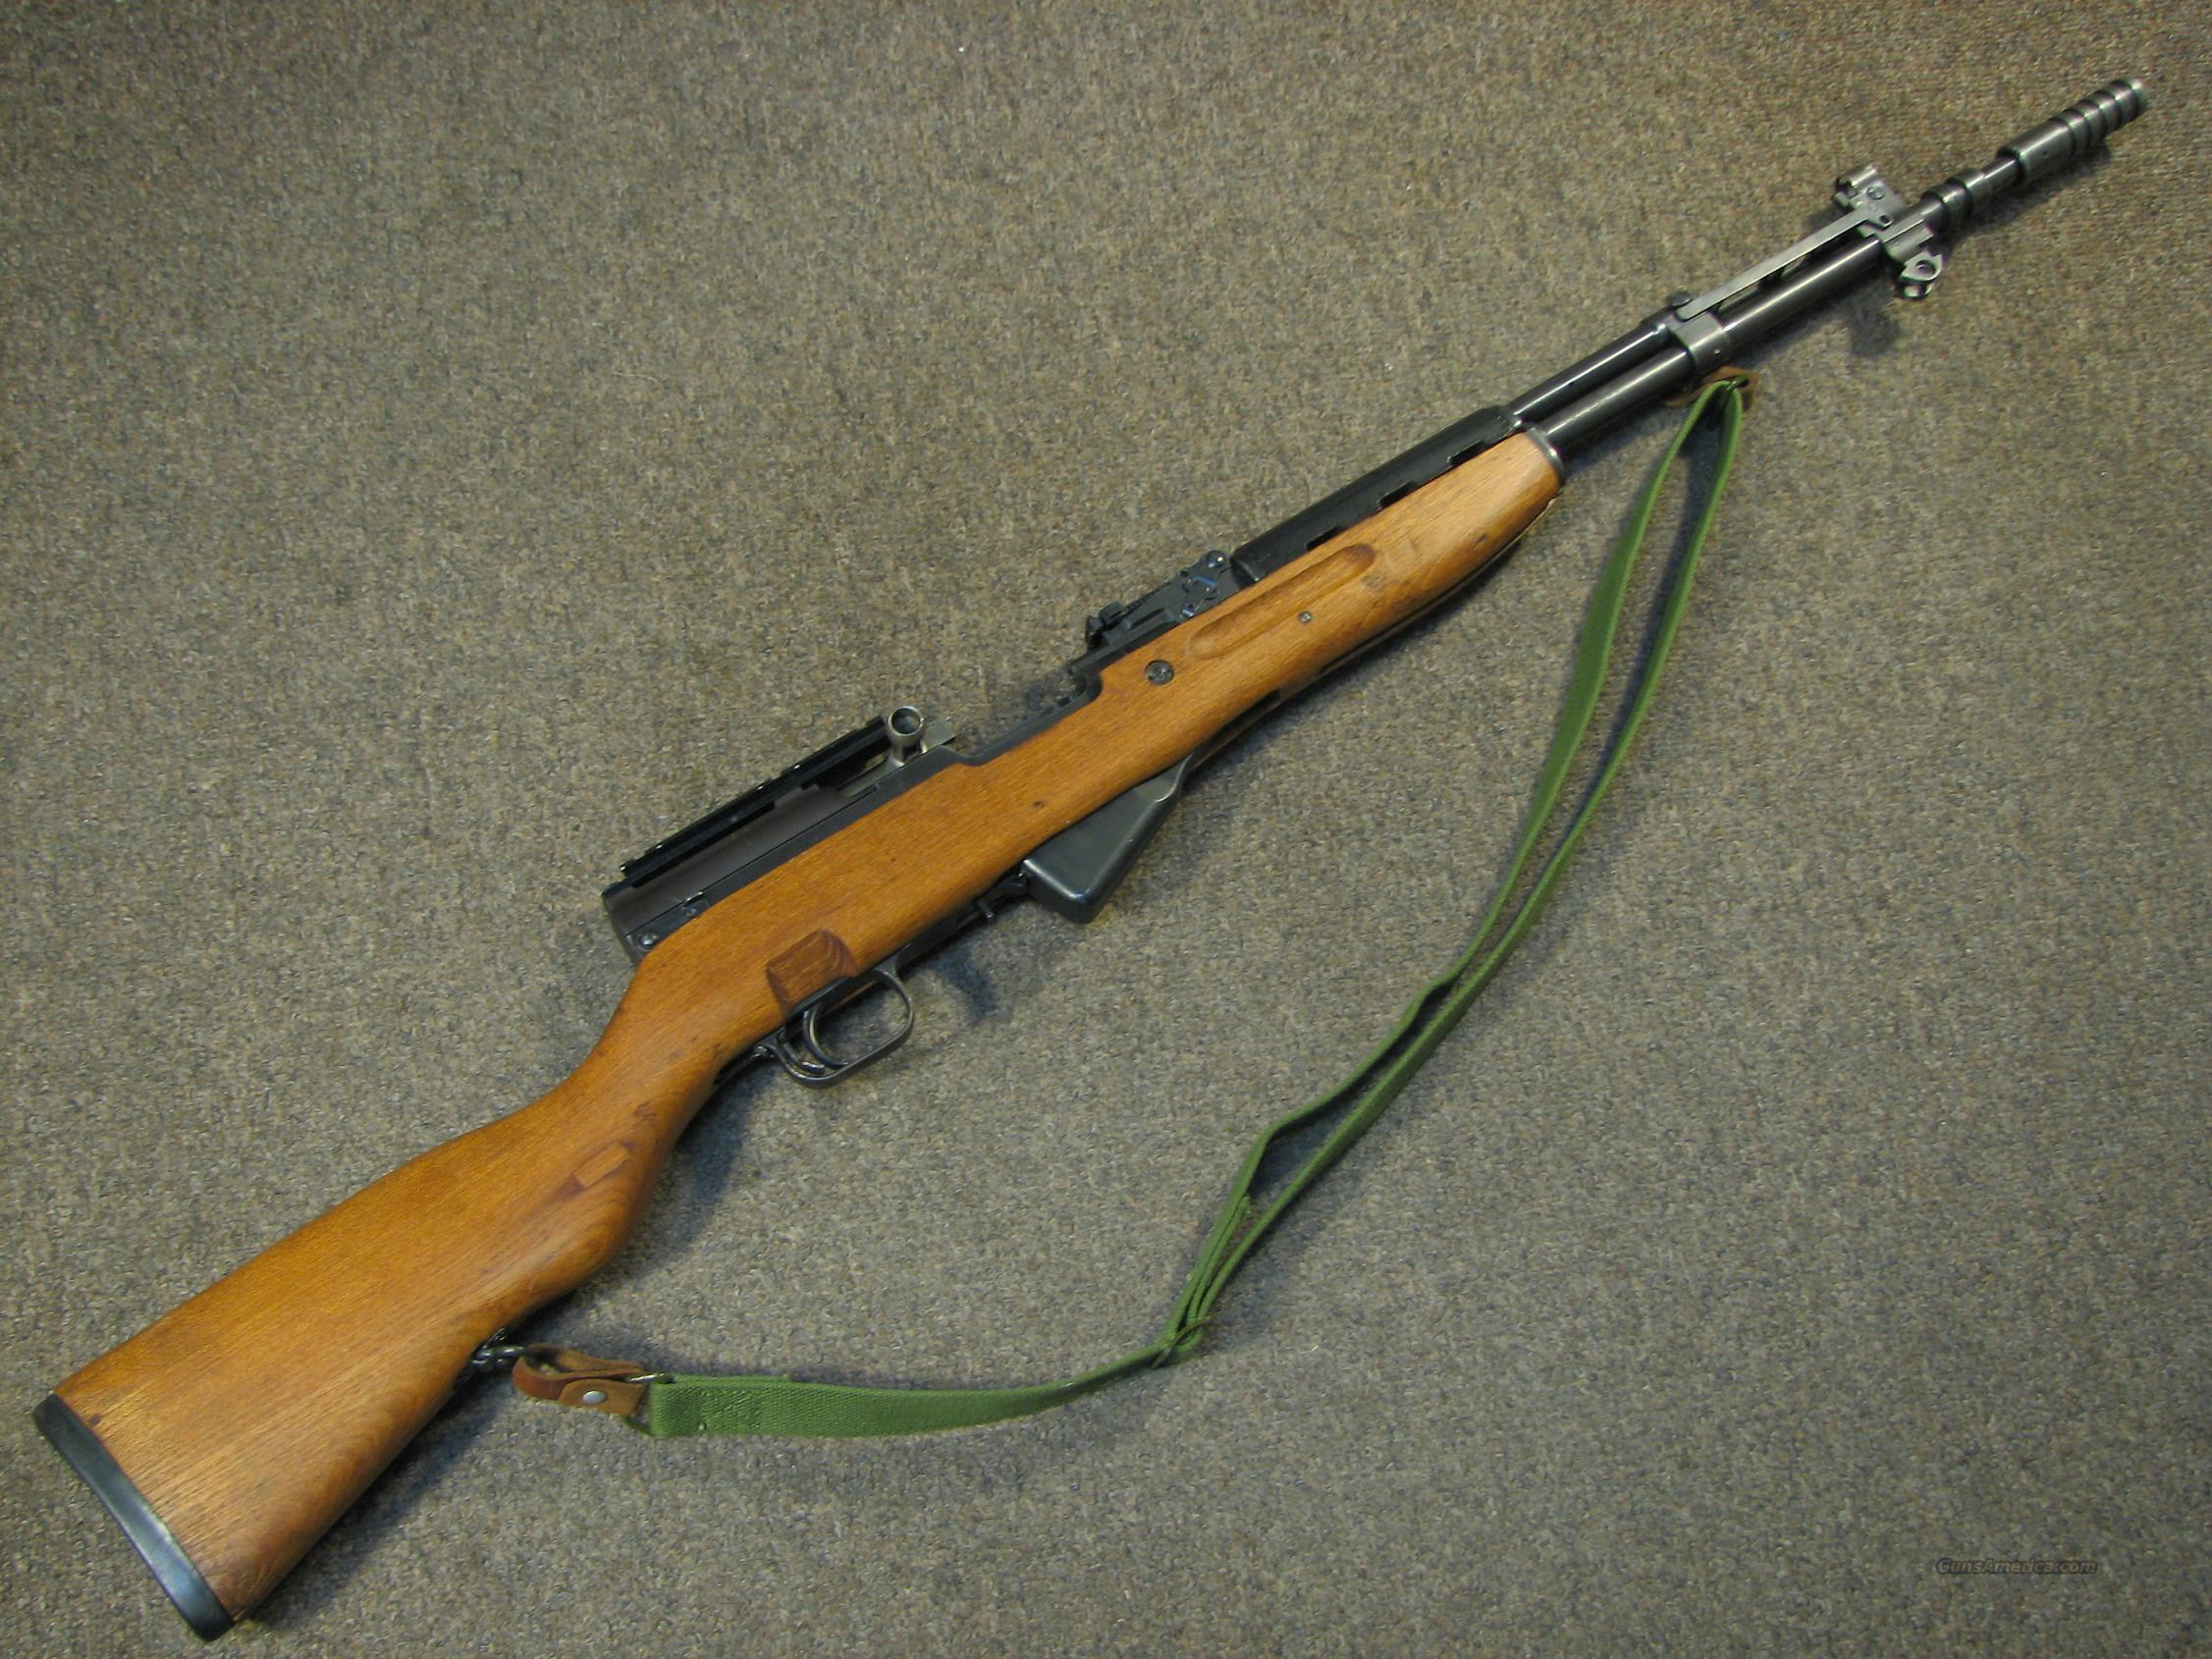 Yugoslavian sks for sale